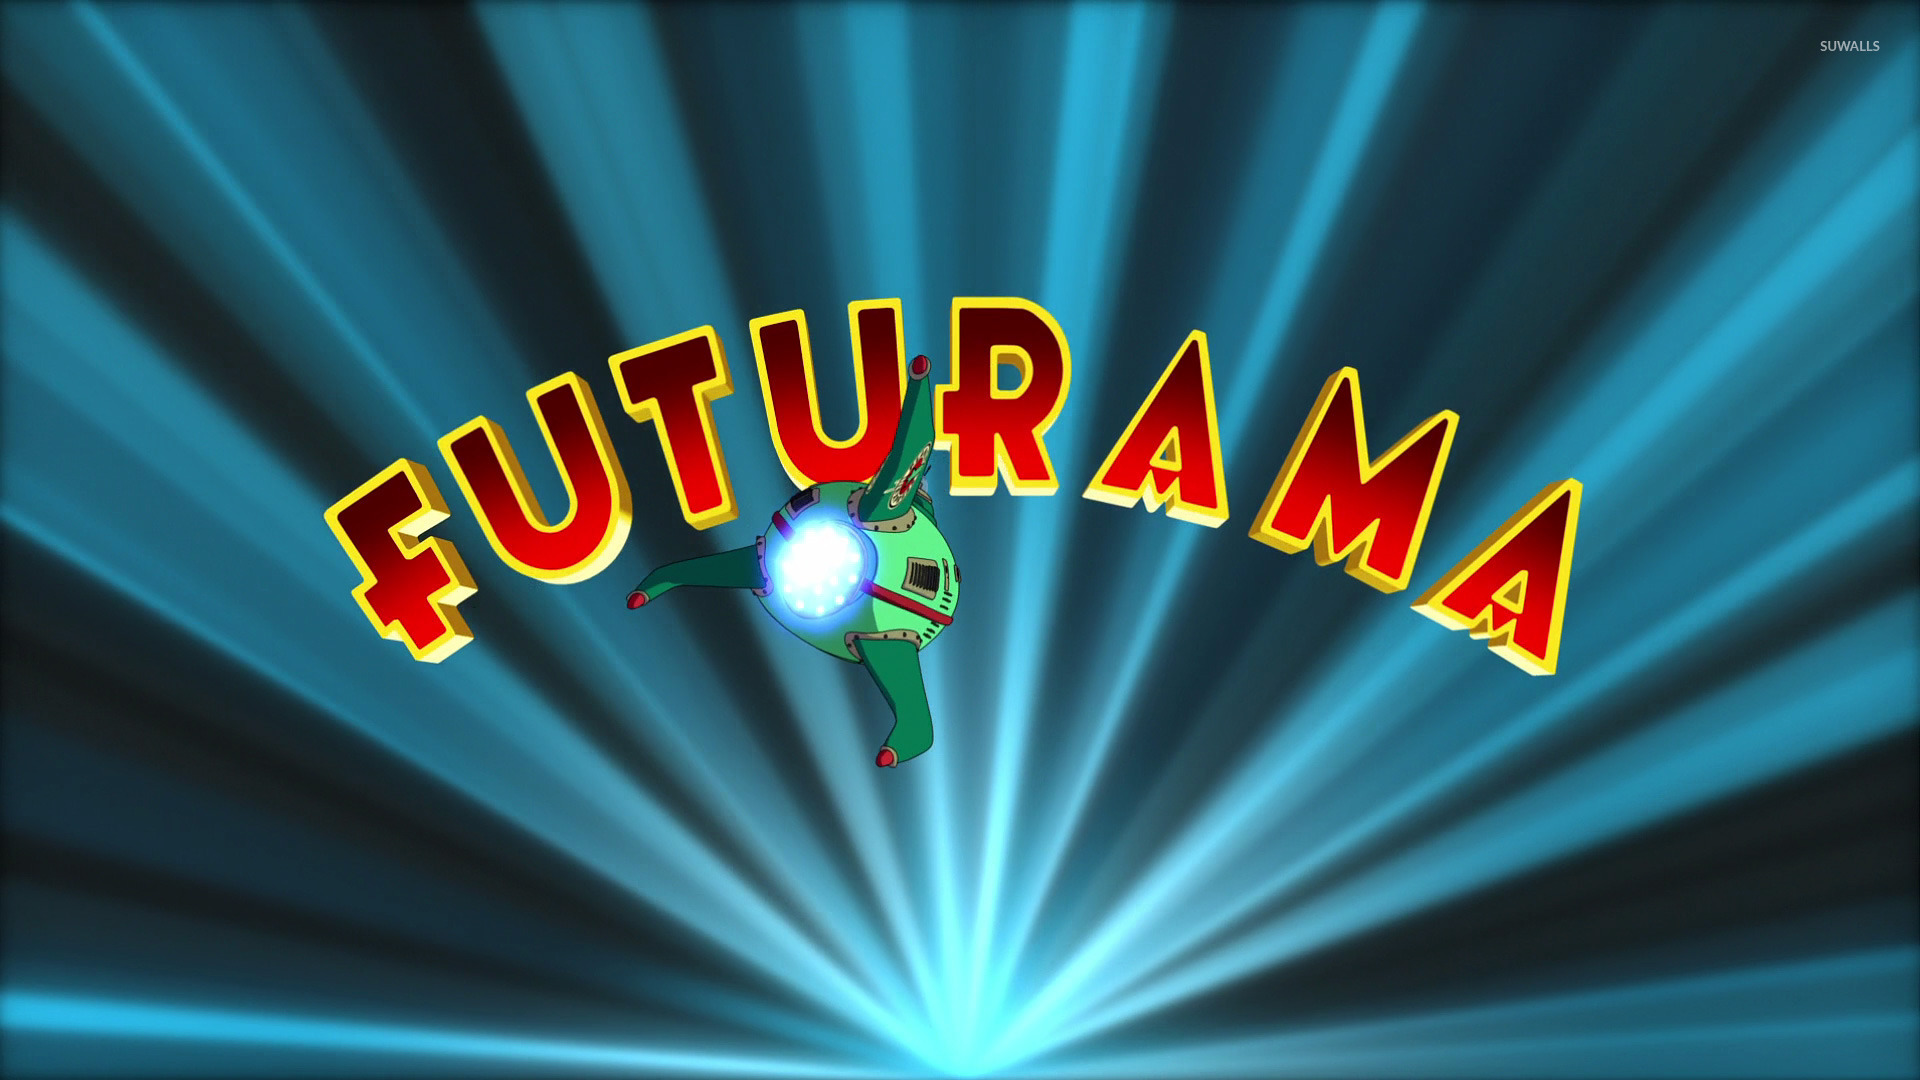 Fall Computer Wallpaper Futurama Hd Wallpapers